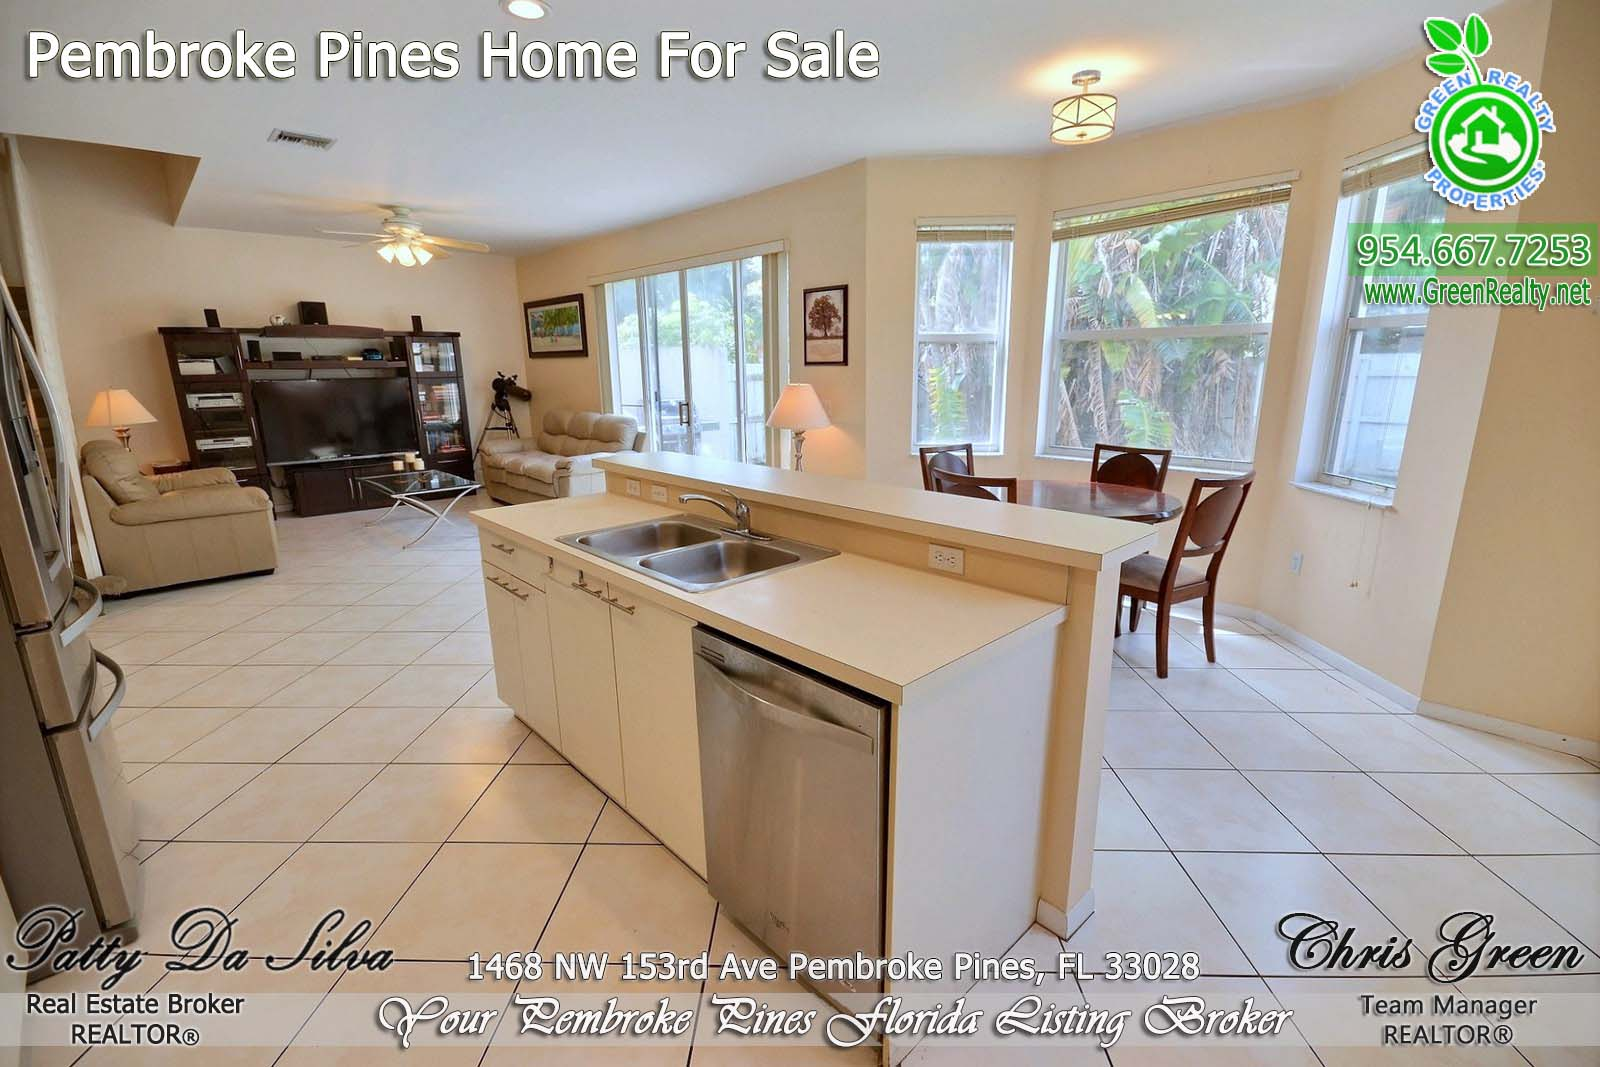 11 Homes For Sale in Pembroke Pines (2)